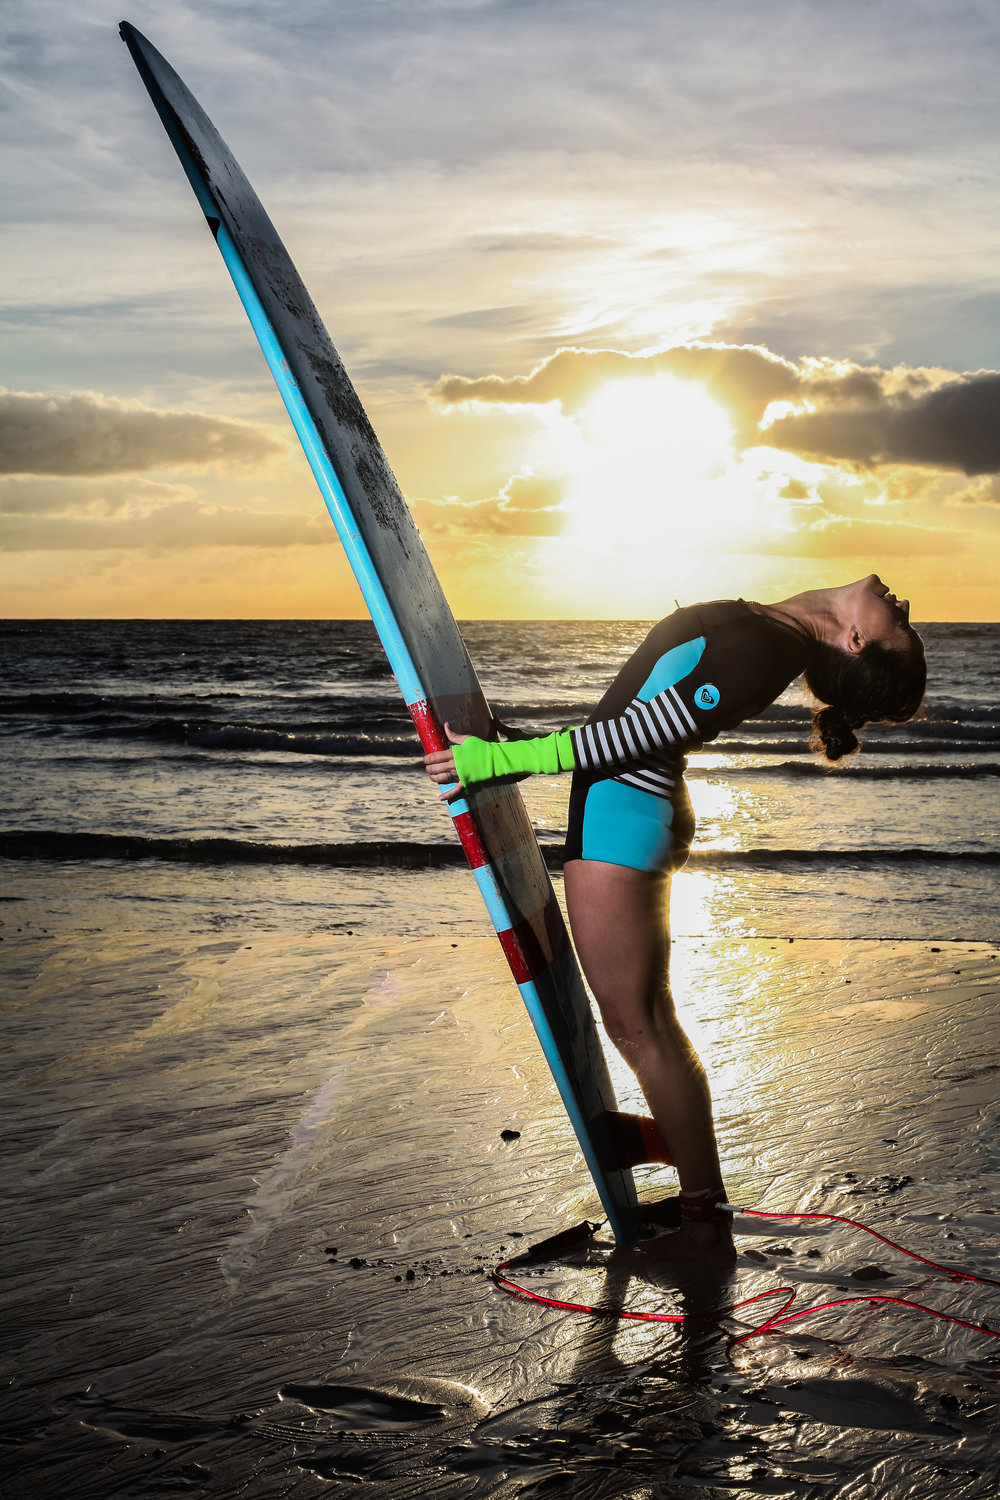 Yoga and Surf Retreats - Surfing and yoga is a great combination!Want to deepen your yoga practice, and learn to surf, or improve your surfing, get better technique and be able to catch more waves? Come join me on the north shore of Fuerteventura for a retreat of zen, surf, fun and sun.